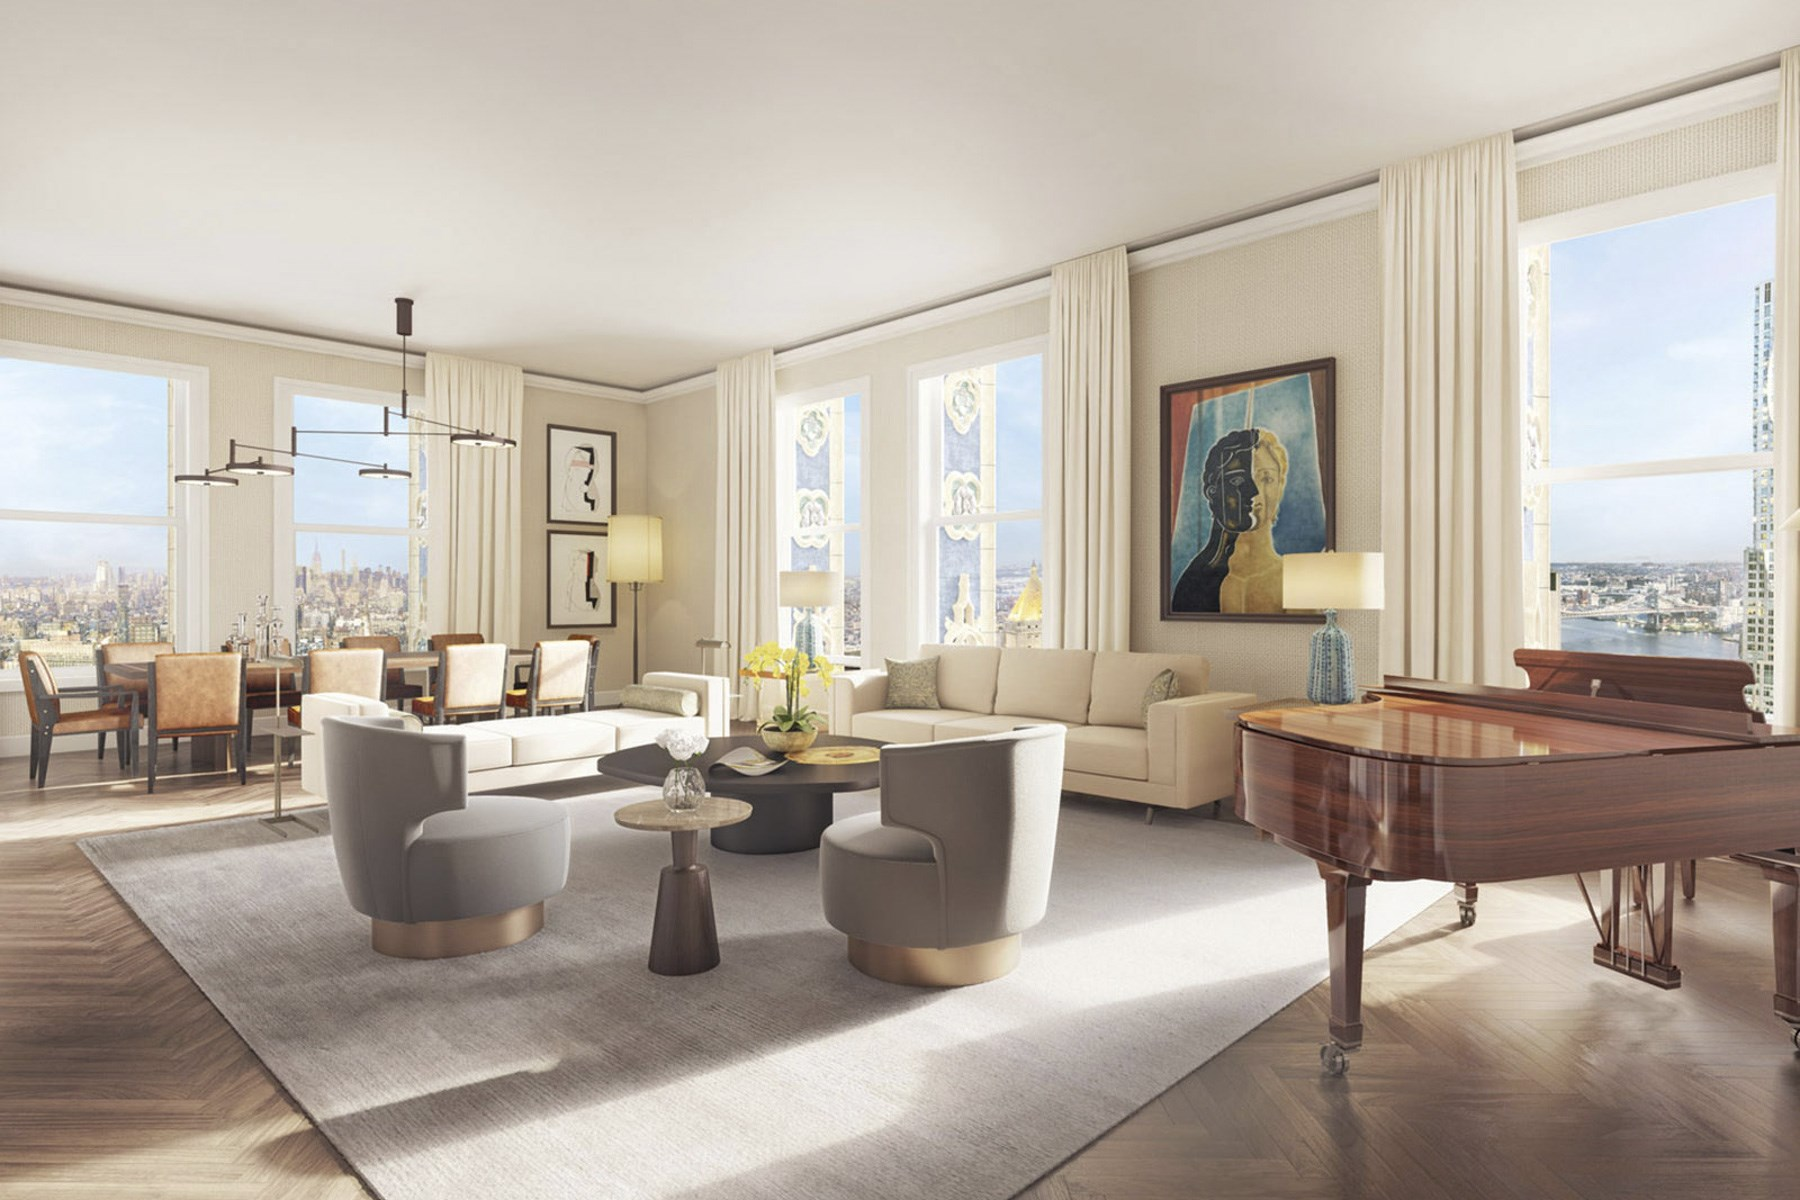 Кондоминиум для того Продажа на The Woolworth Tower Residences - 43A 2 Park Place Apt 43A Tribeca, New York, Нью-Йорк, 10007 Соединенные Штаты